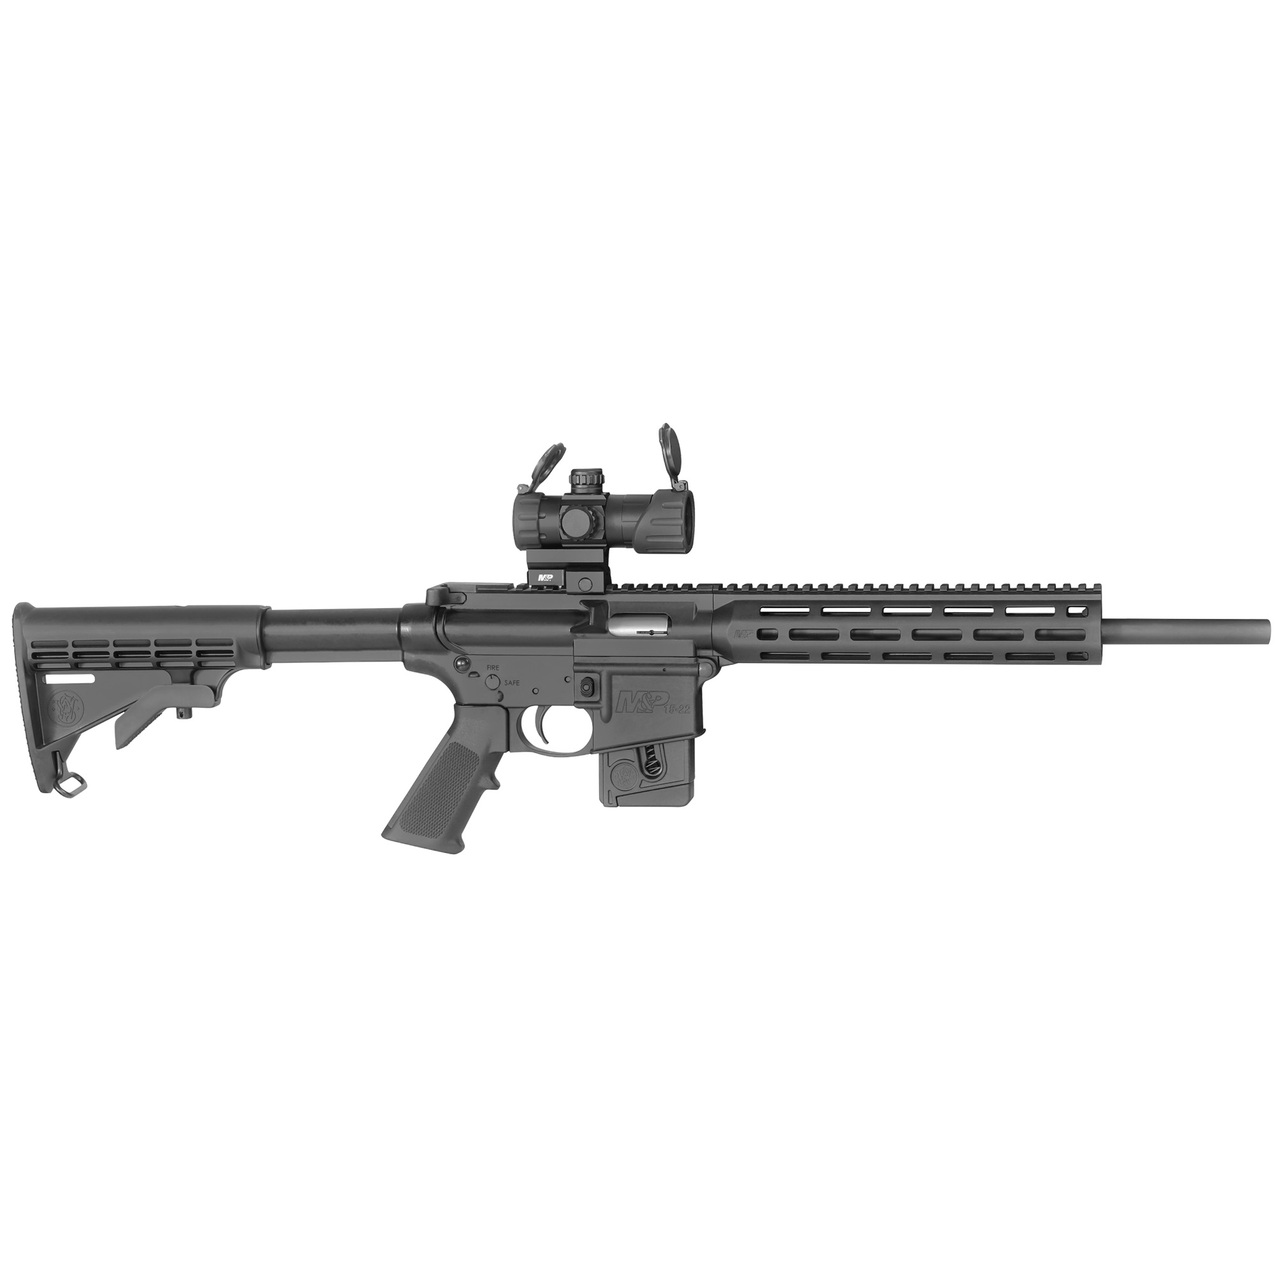 Smith & Wesson M&P15-22 SPORT OR Red Dot Optic 10 Rounds